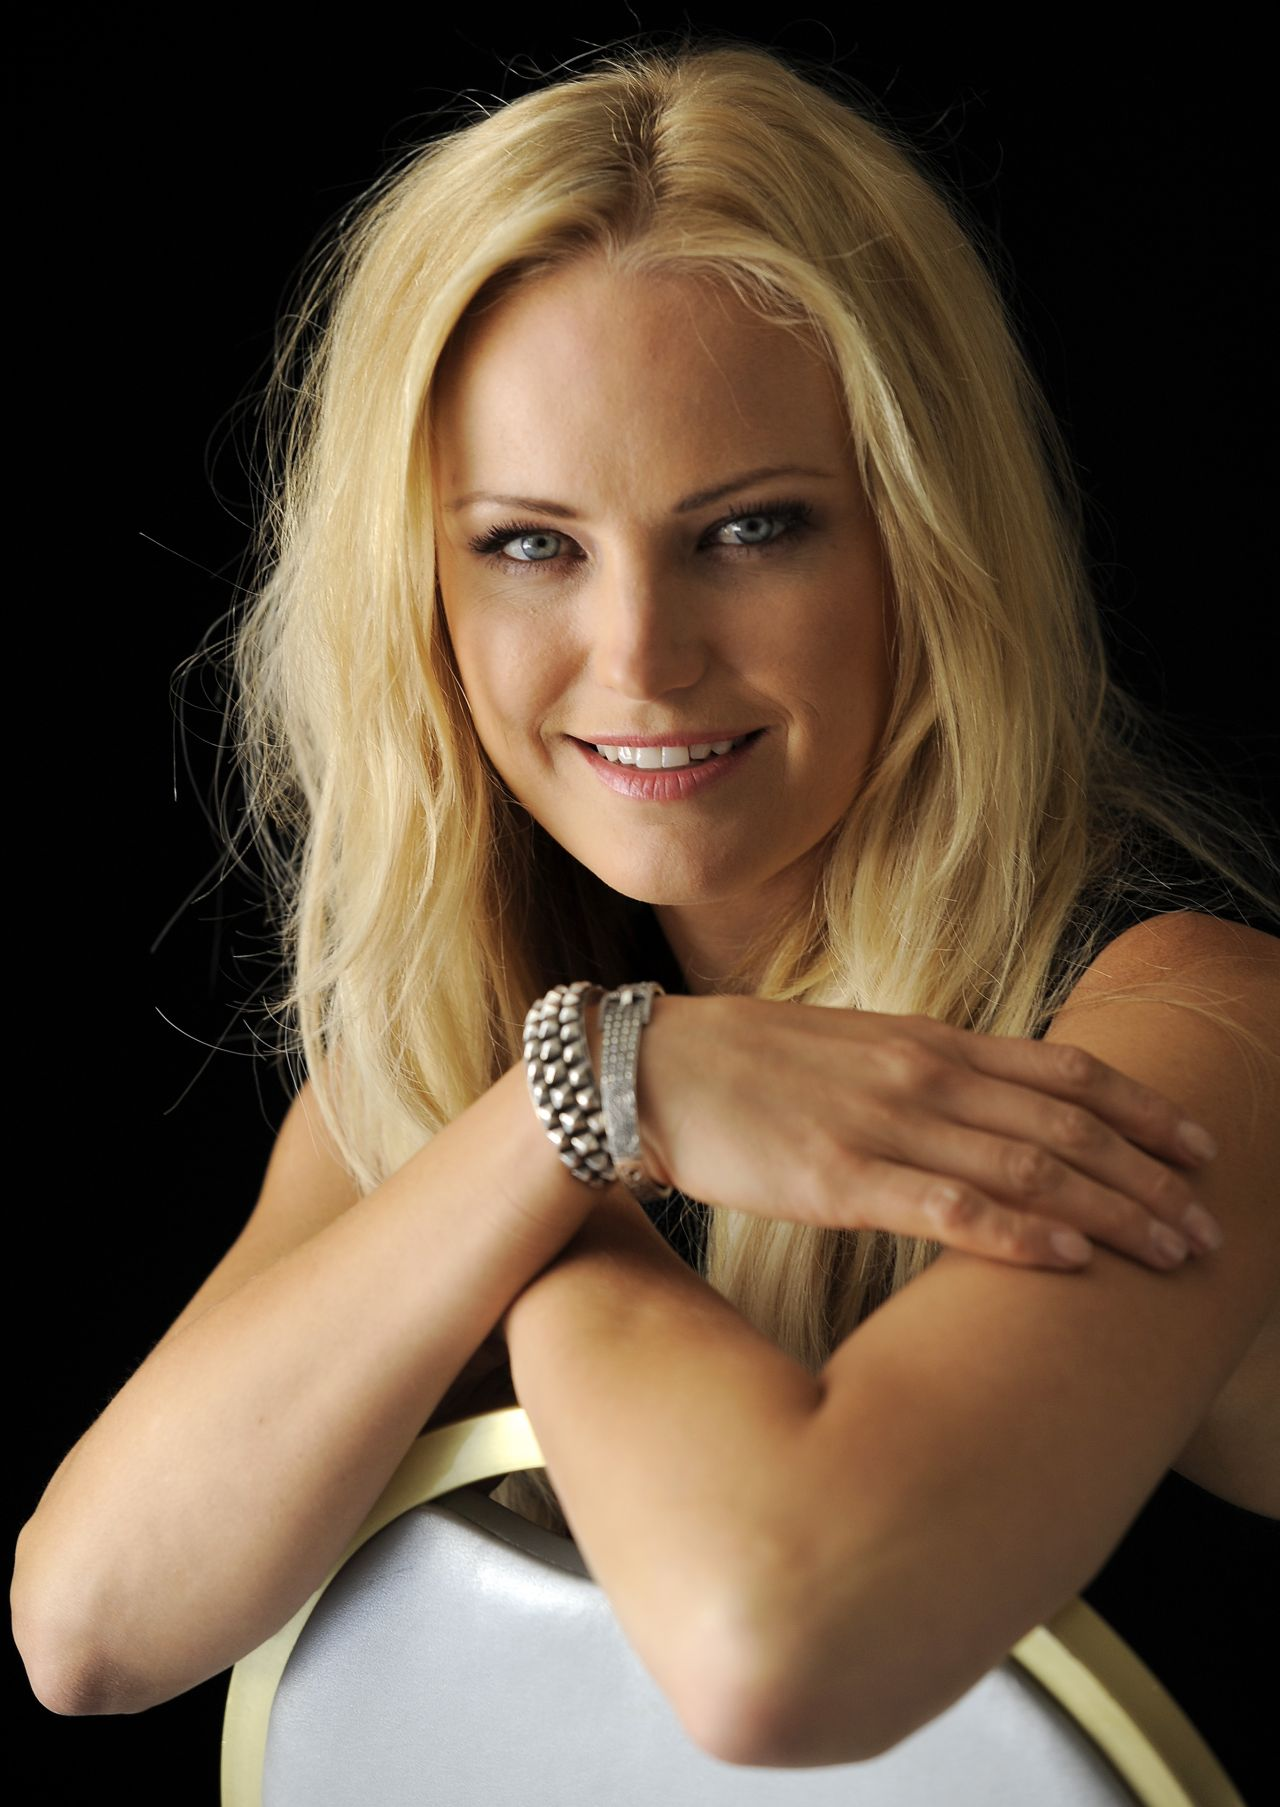 Malin Akerman Photoshoot by Chris Pizzello – Portraits Year 2012: celebmafia.com/malin-akerman-photoshoot-chris-pizzello-portraits...